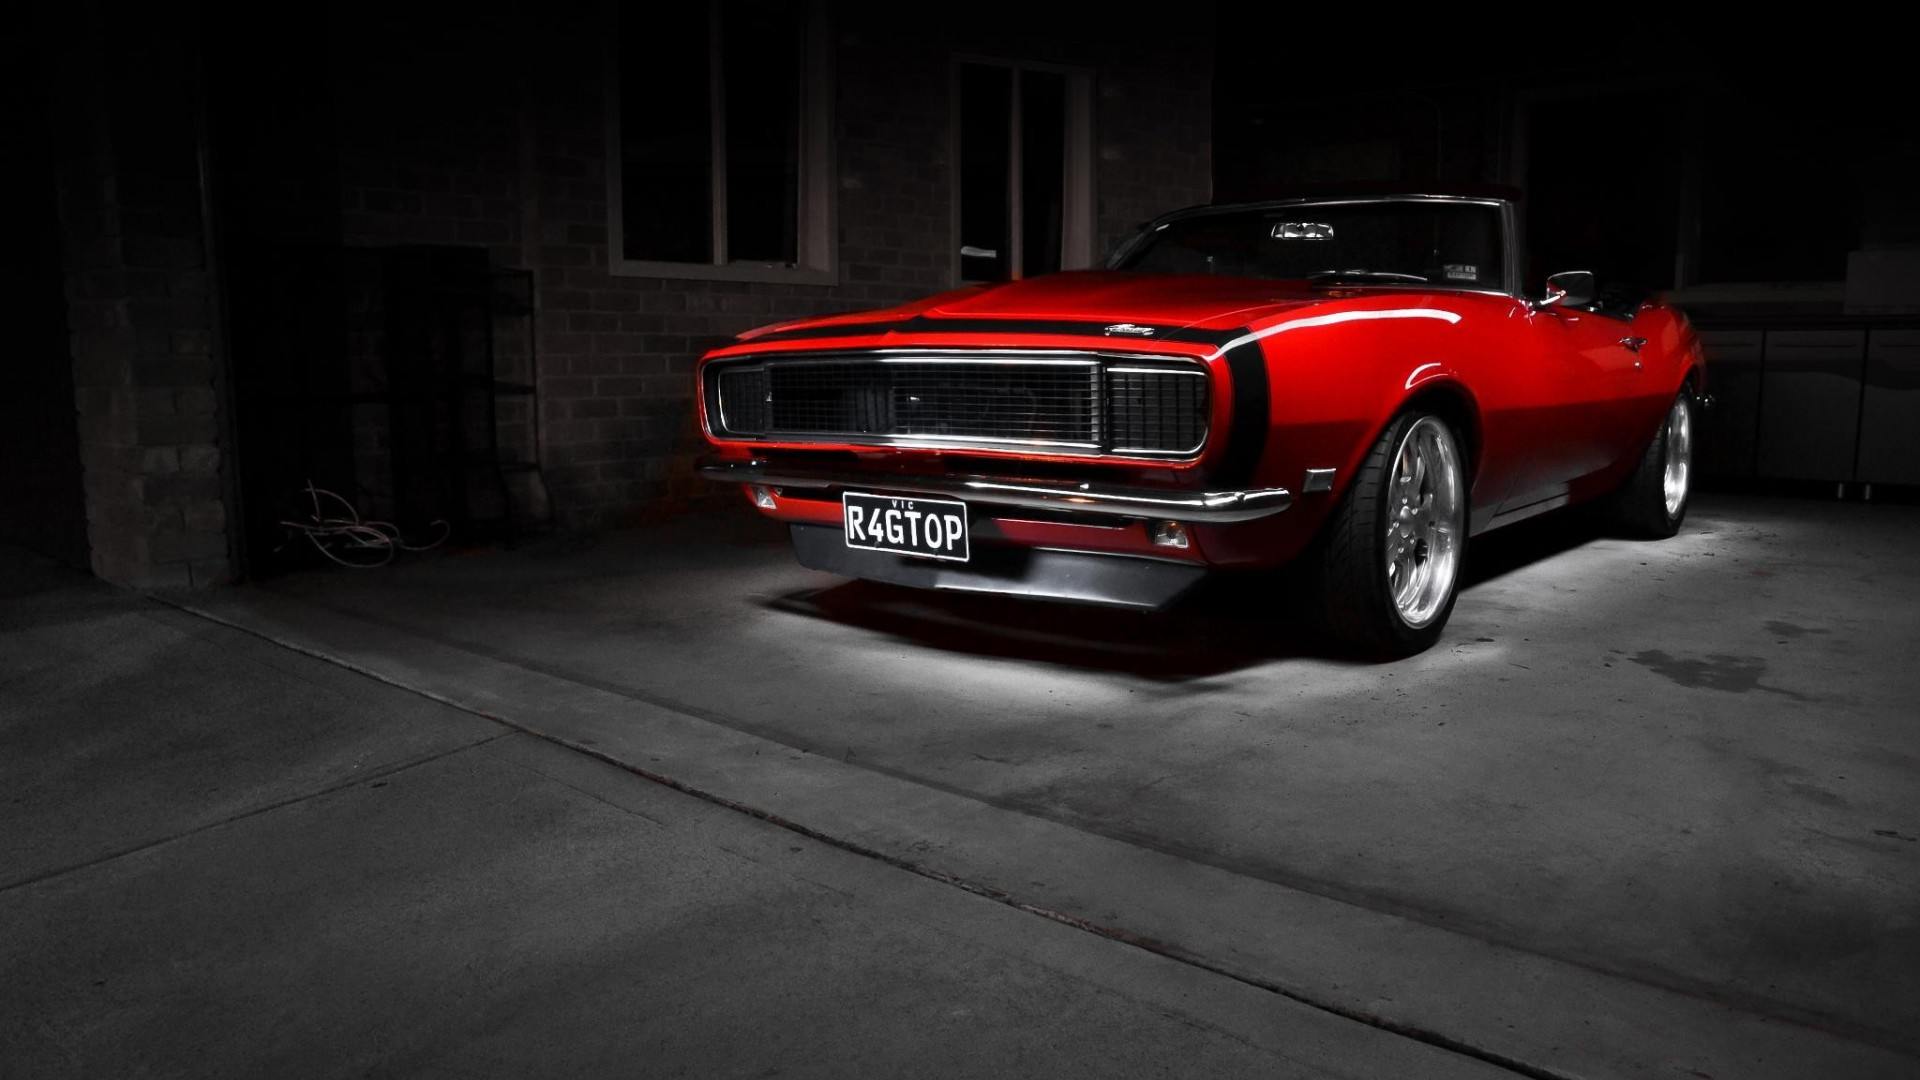 Muscle Cars in 1920X1080 Wallpapers - WallpaperSafari